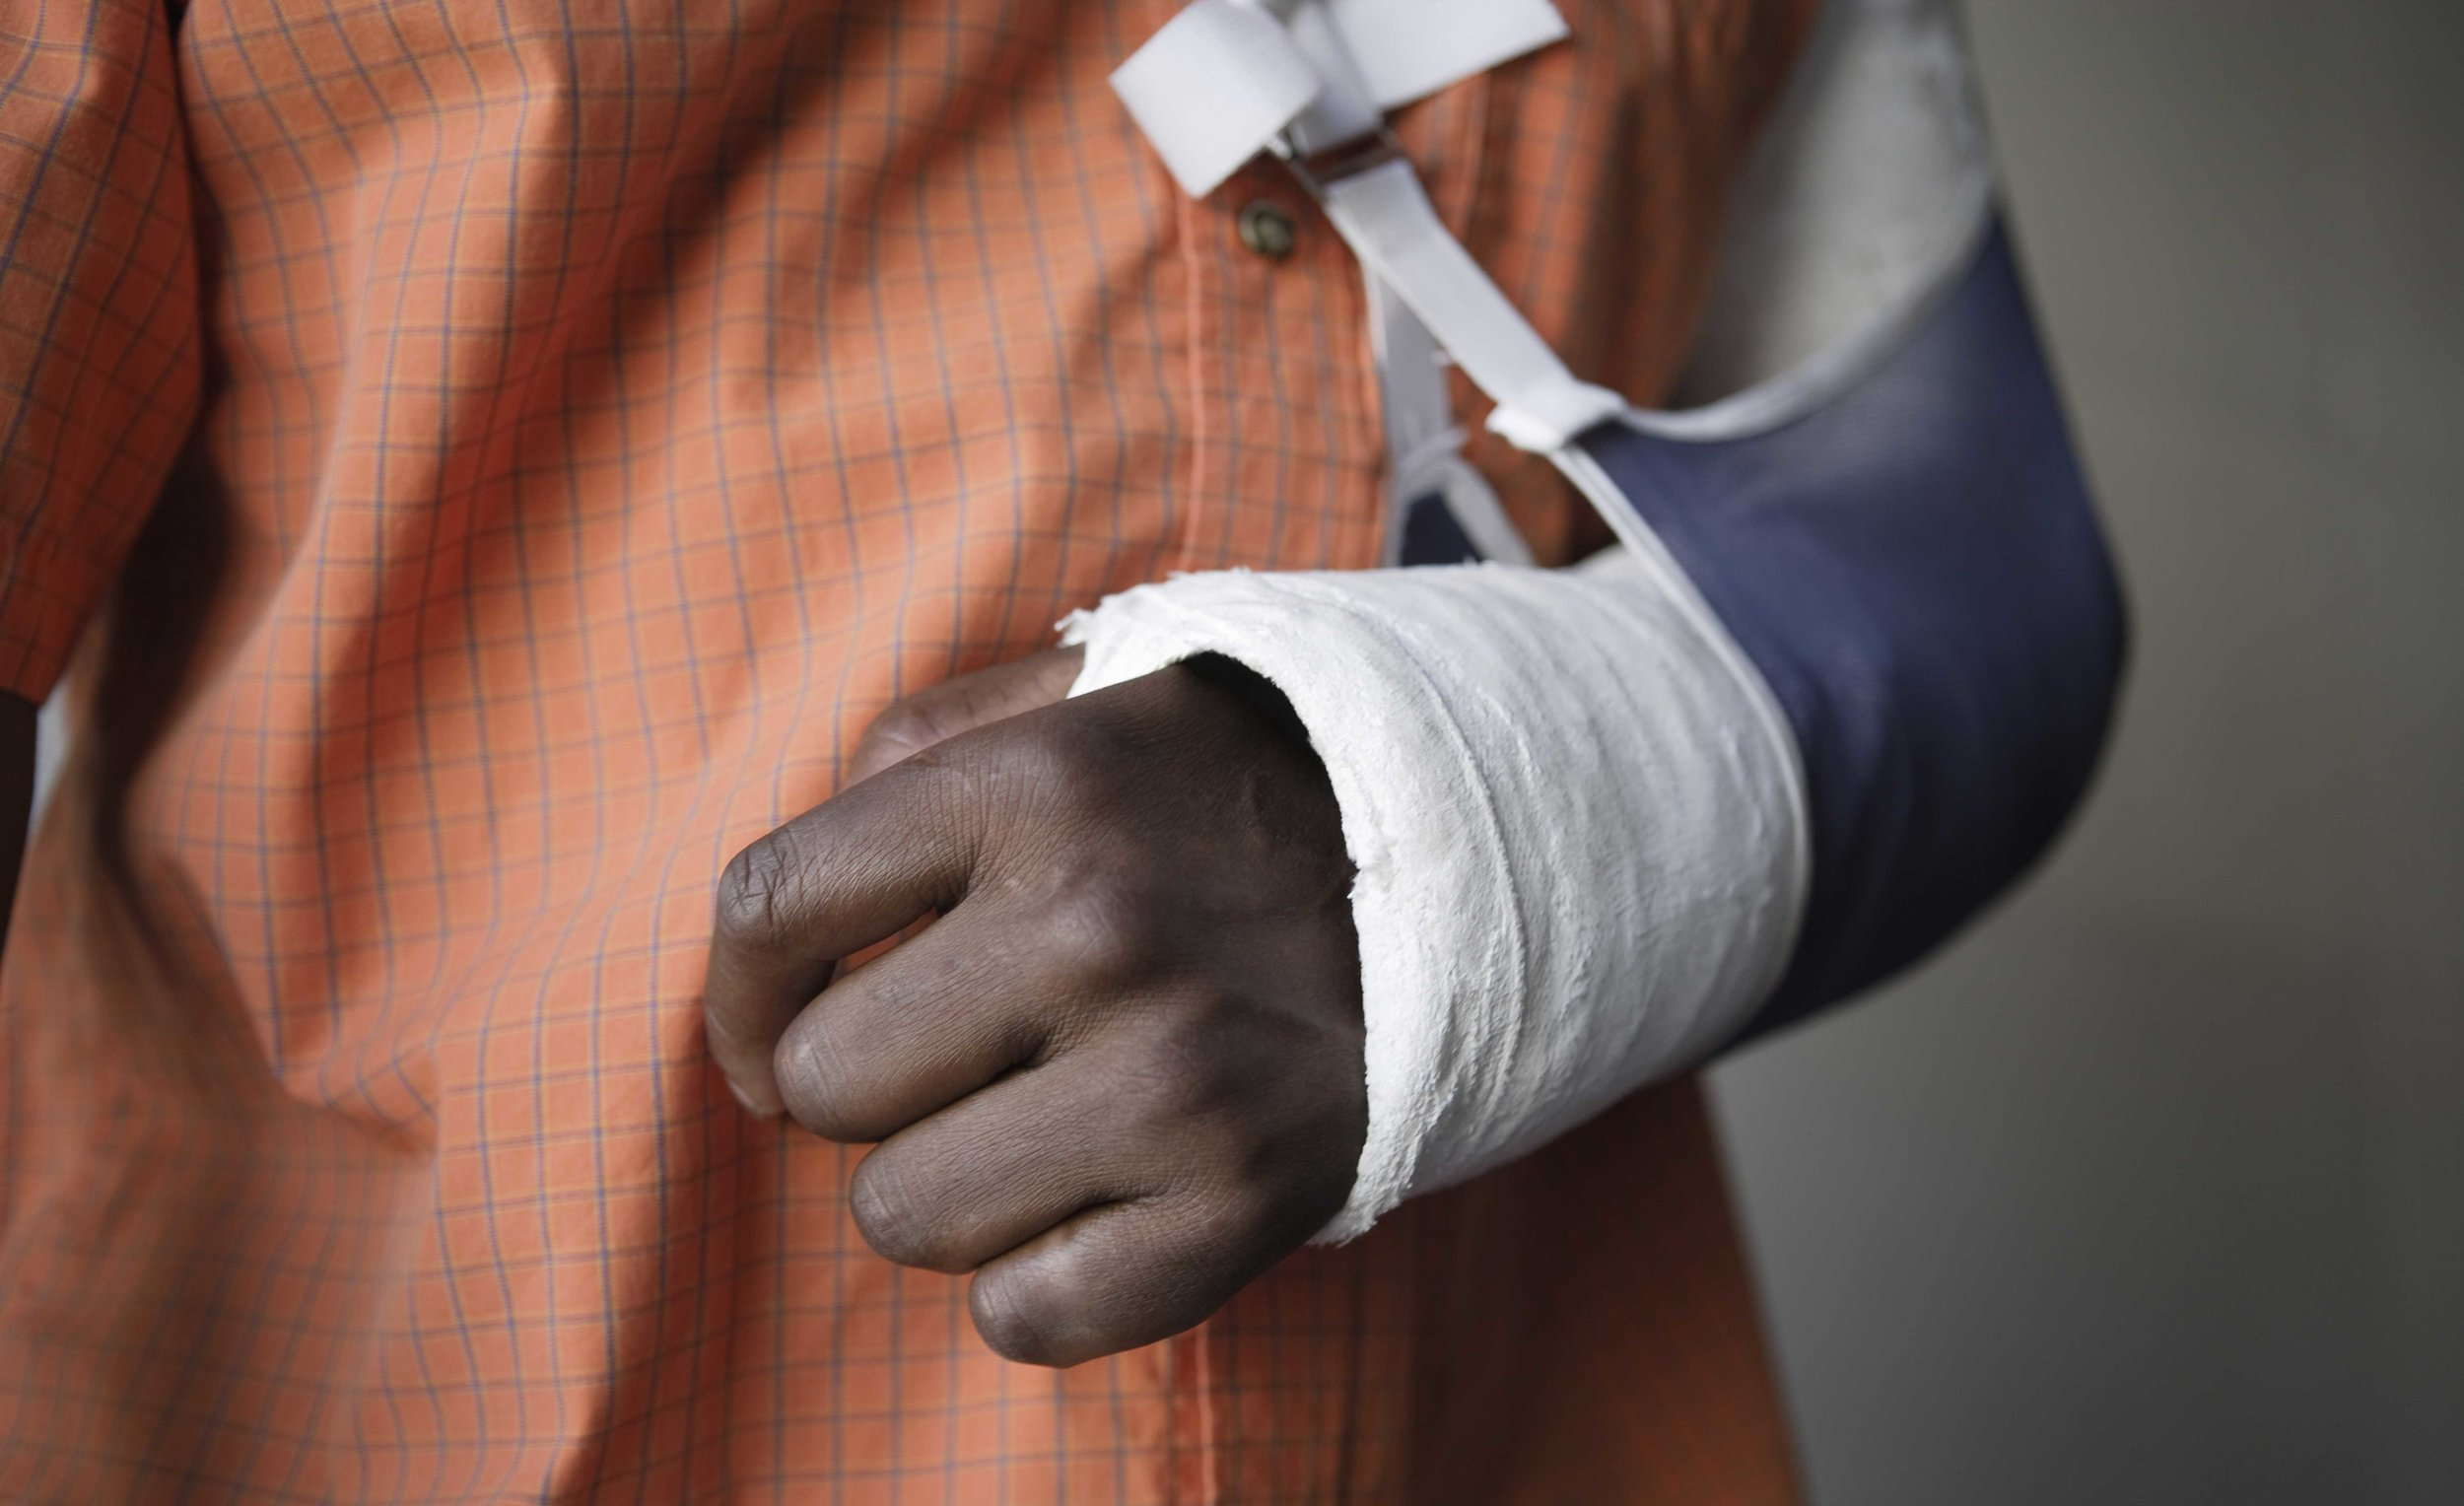 Workers-Compensation-vs.-Personal-Injury-Lawsuit.jpg